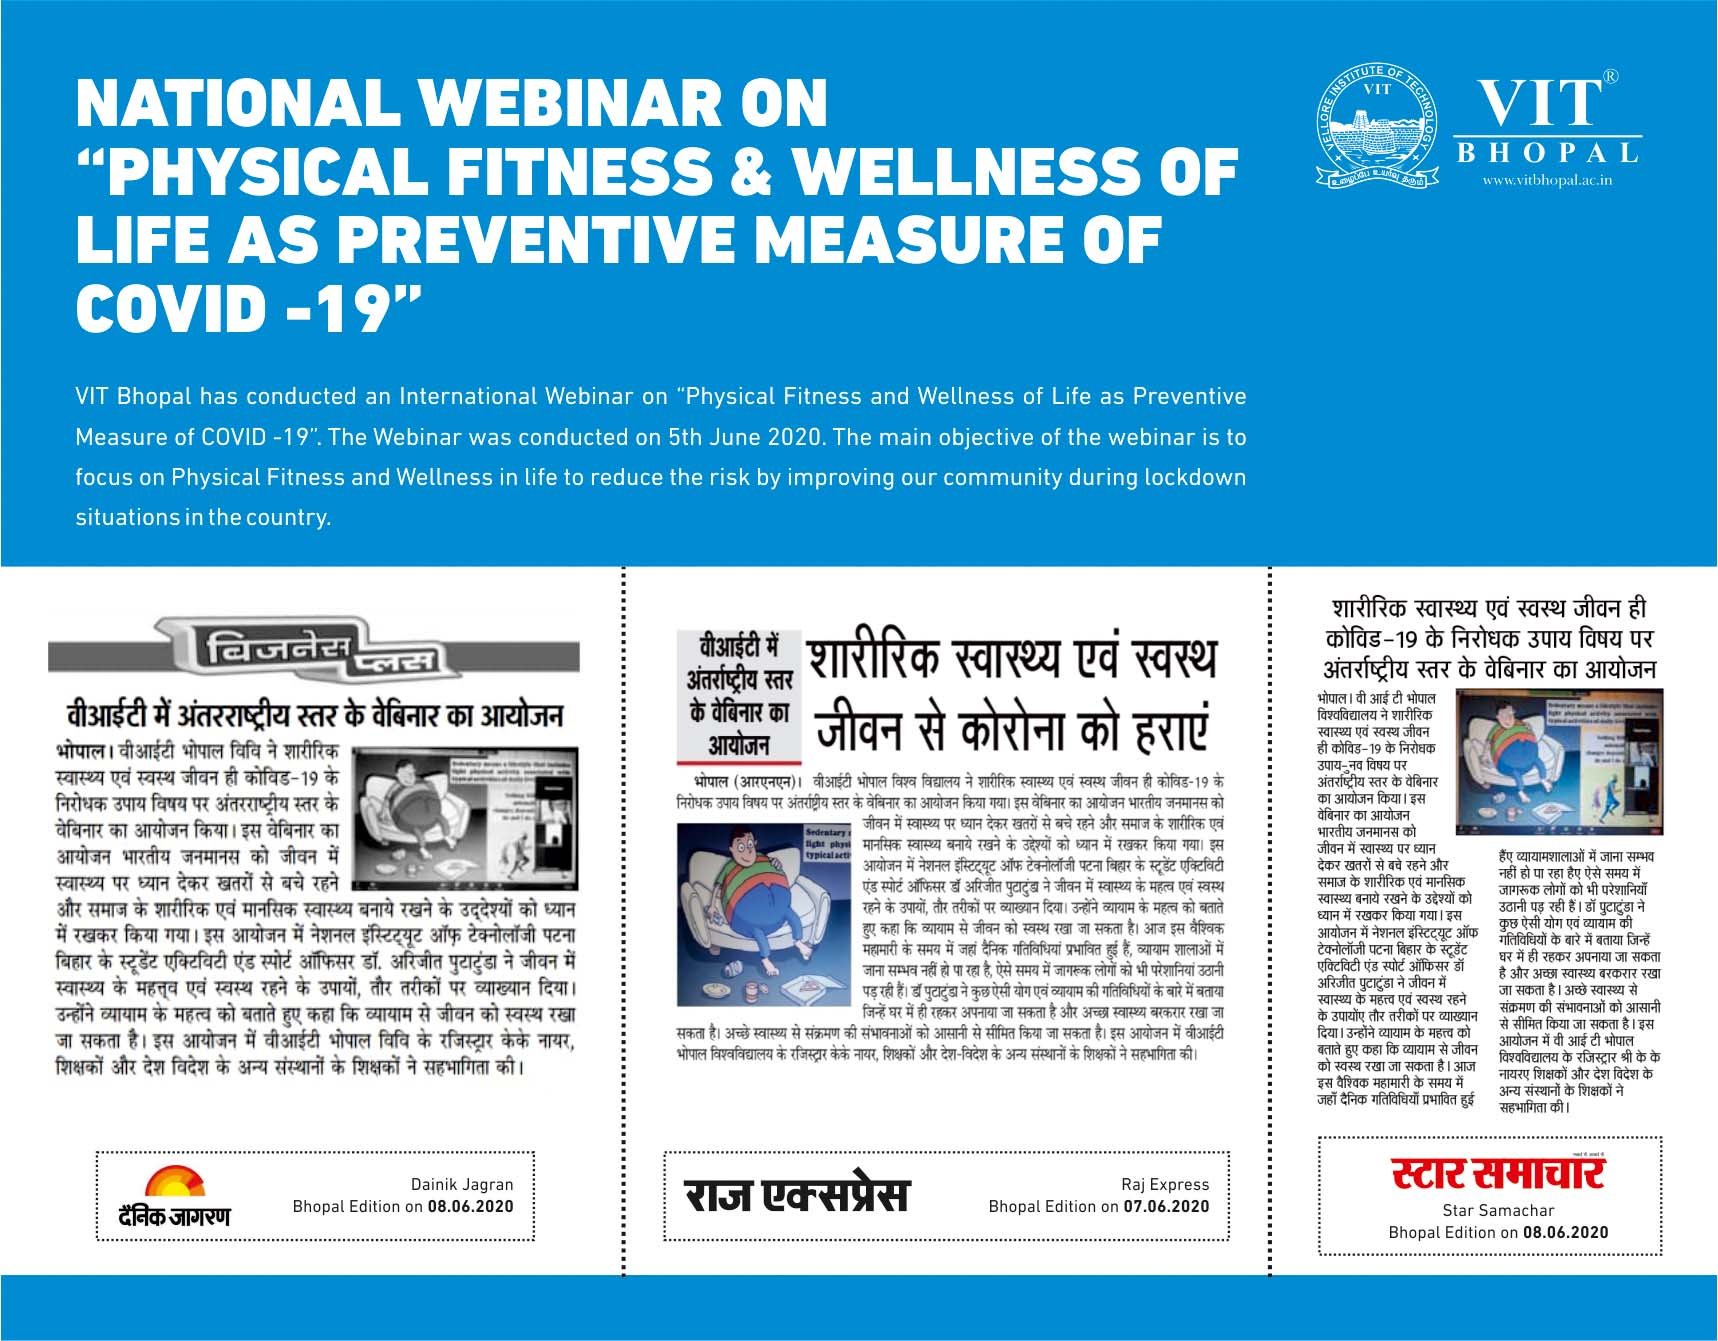 VIT Bhopal  - Best University in Central India -  Physical-Fitness-Webinar-collage